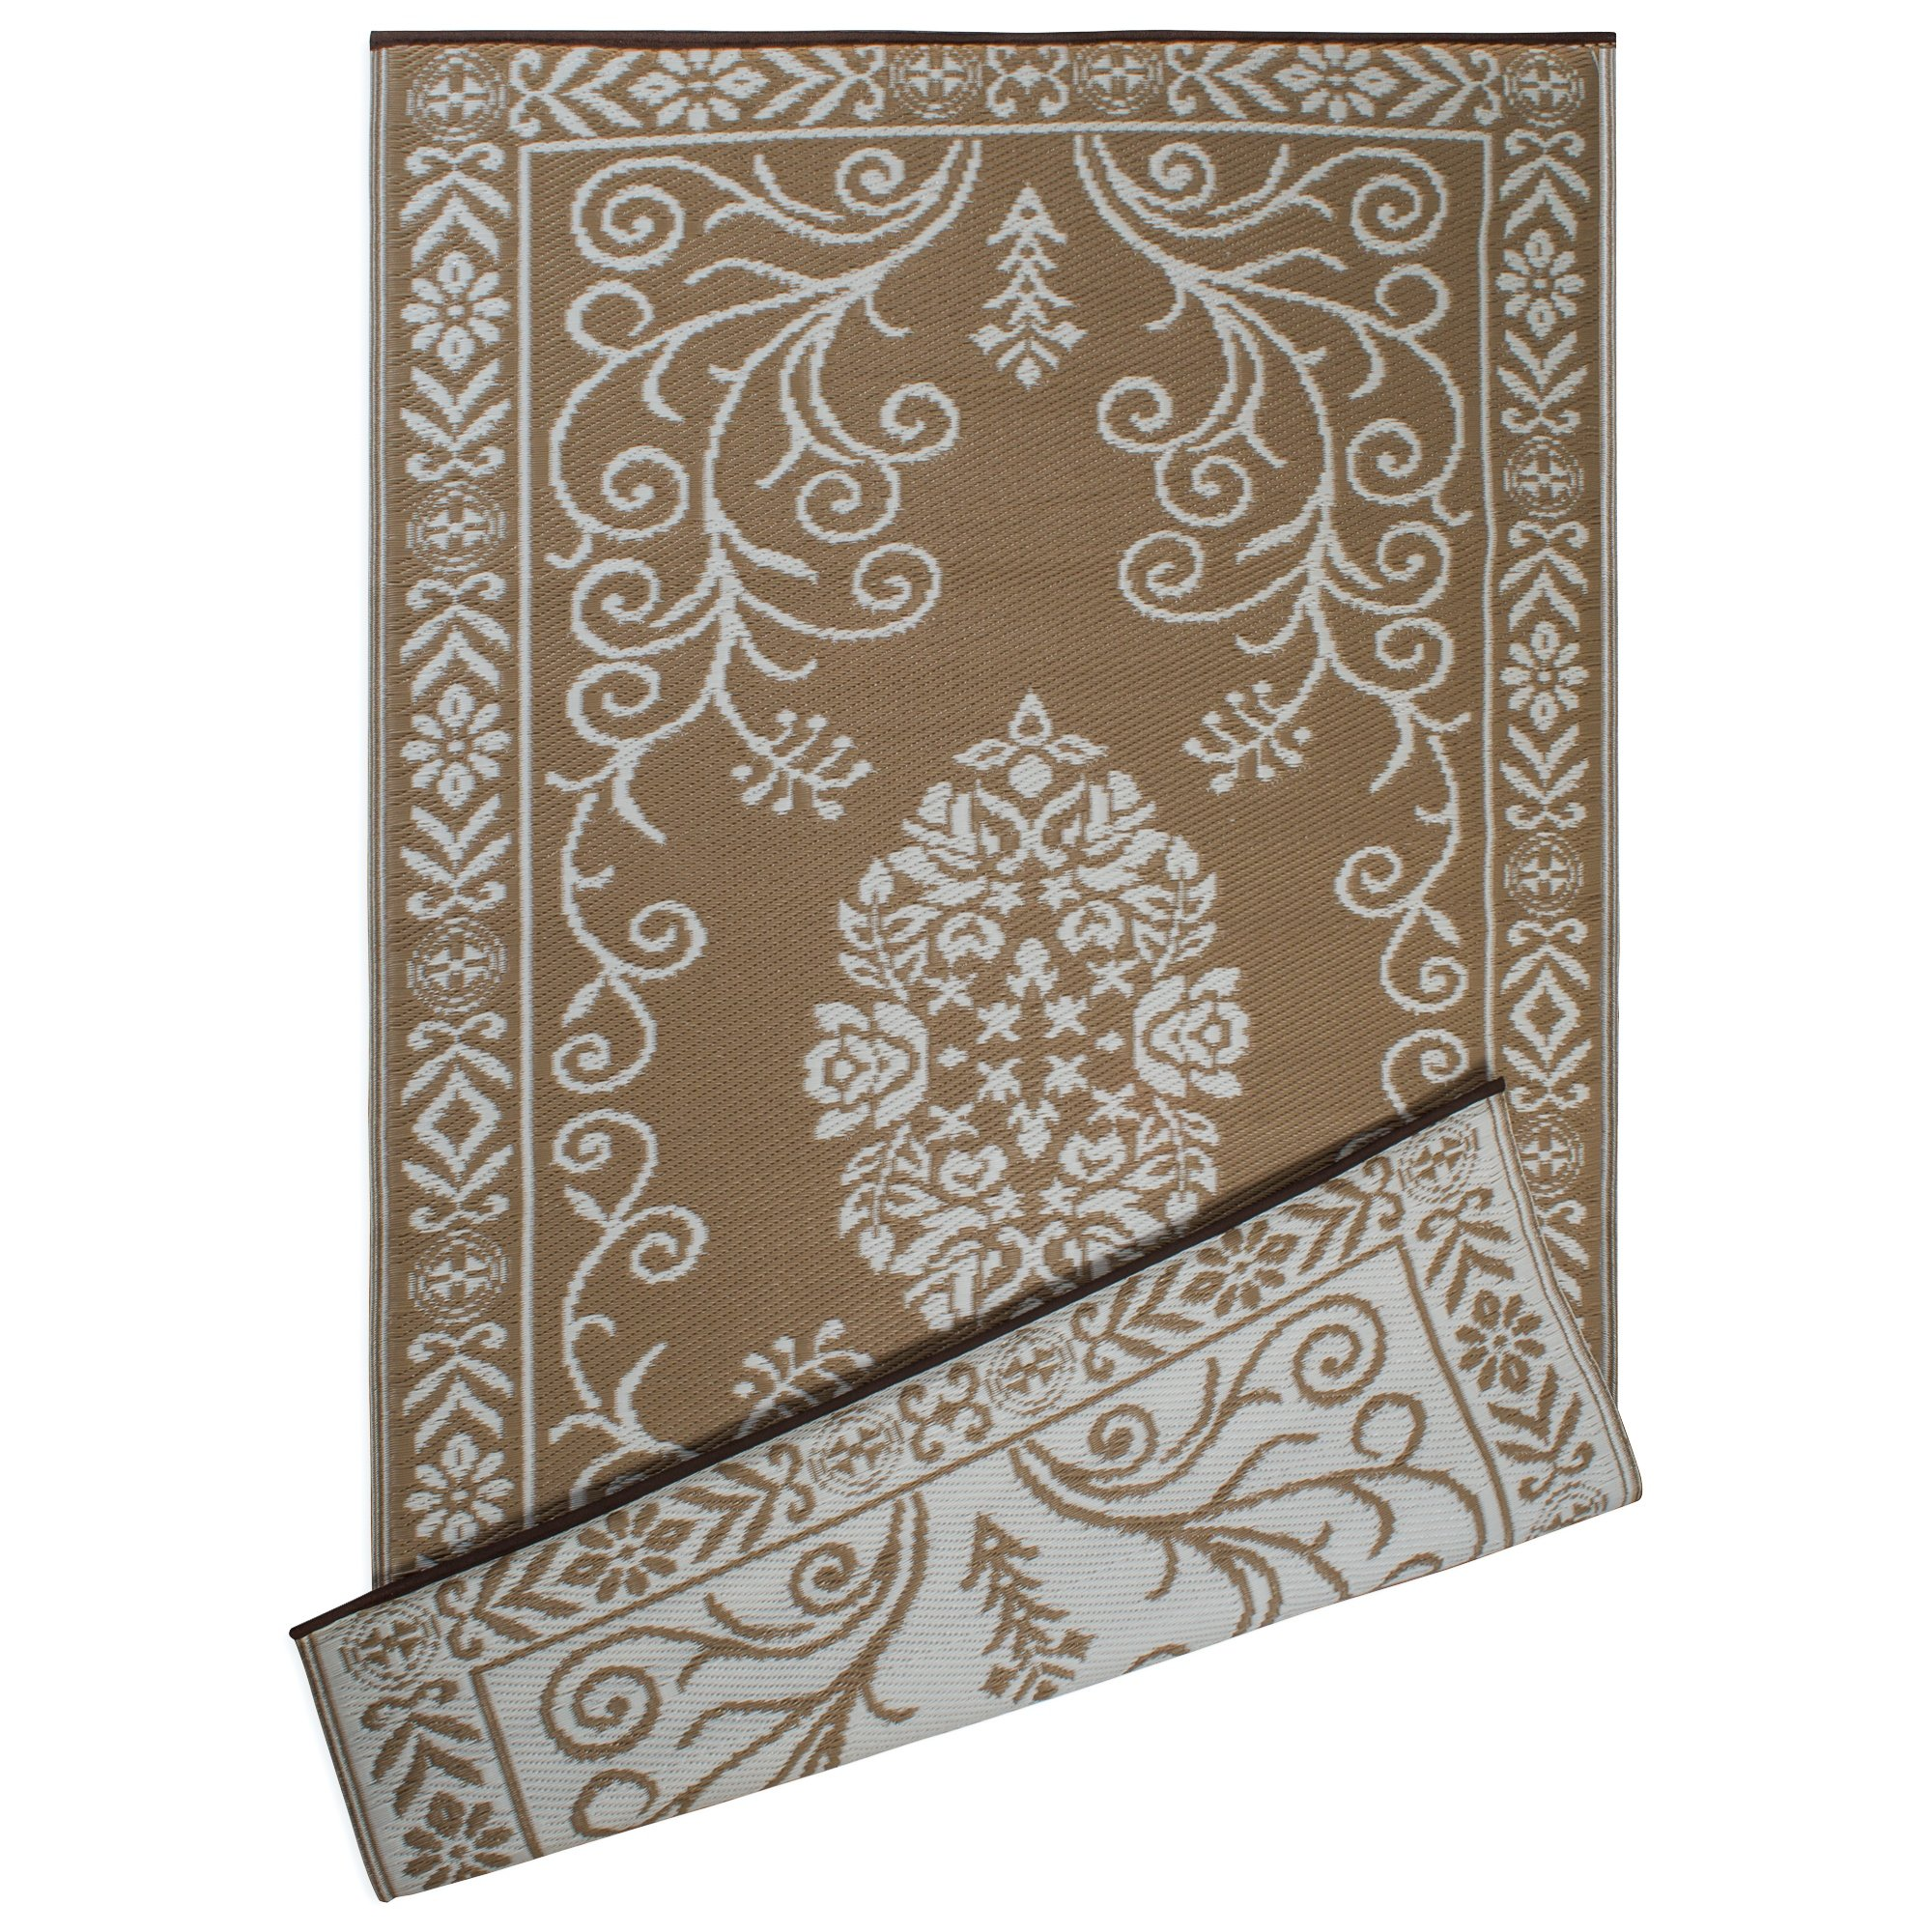 DII Contemporary Indoor/Outdoor Lightweight Reversible Fade Resistant Area Rug, Great For Patio, Deck, Backyard, Picnic, Beach, Camping, & BBQ, 4 x 6', Taupe Garden Floral